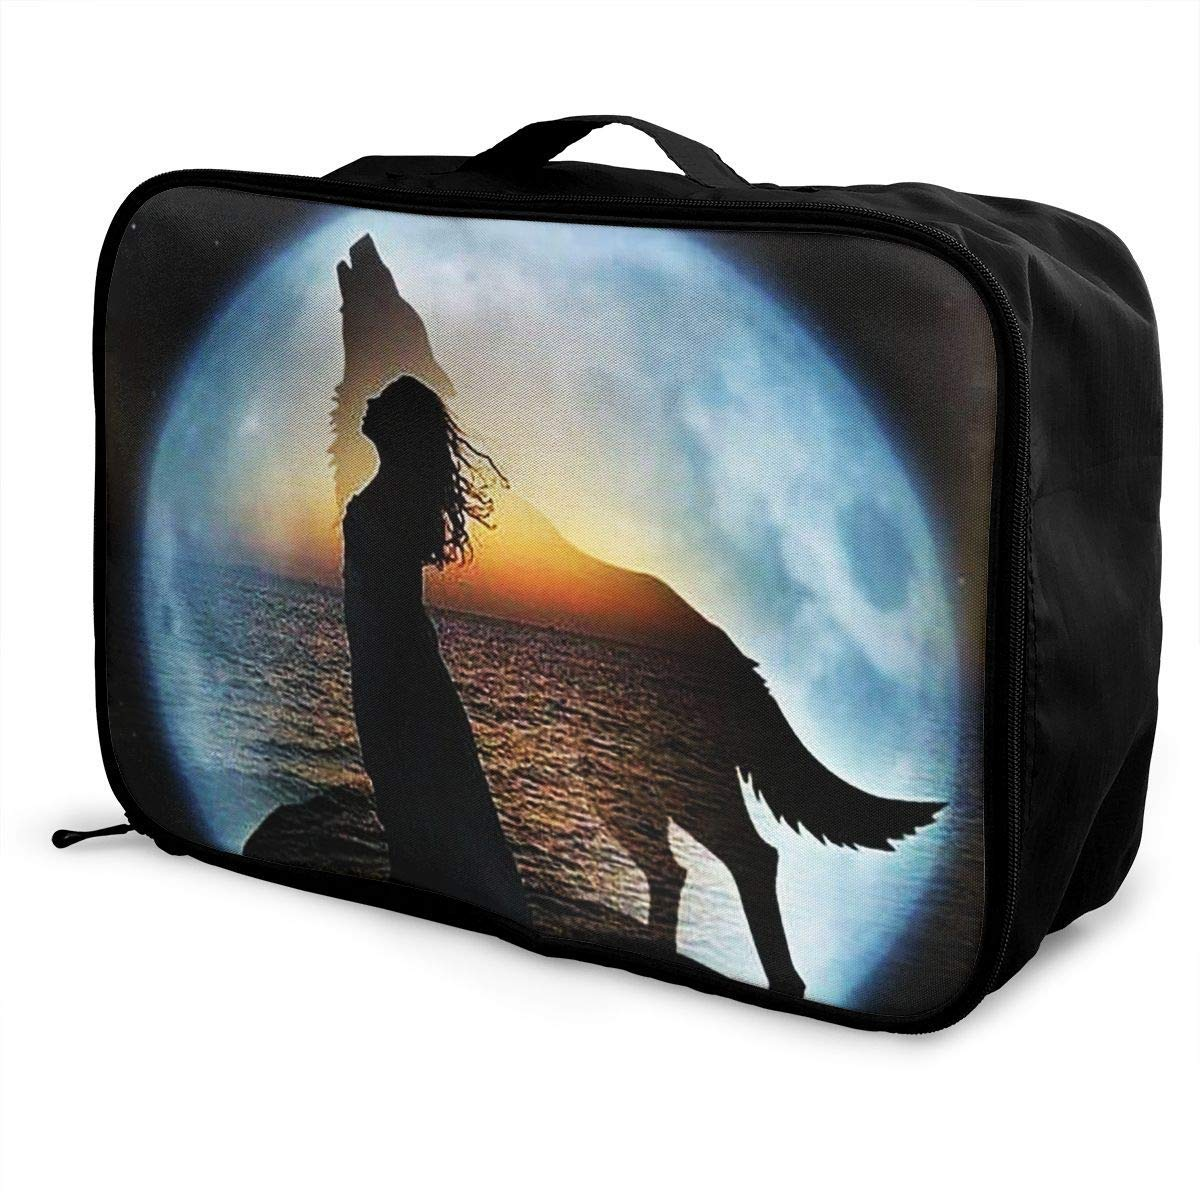 Portable Luggage Duffel Bag Girl Wolf Travel Bags Carry-on In Trolley Handle